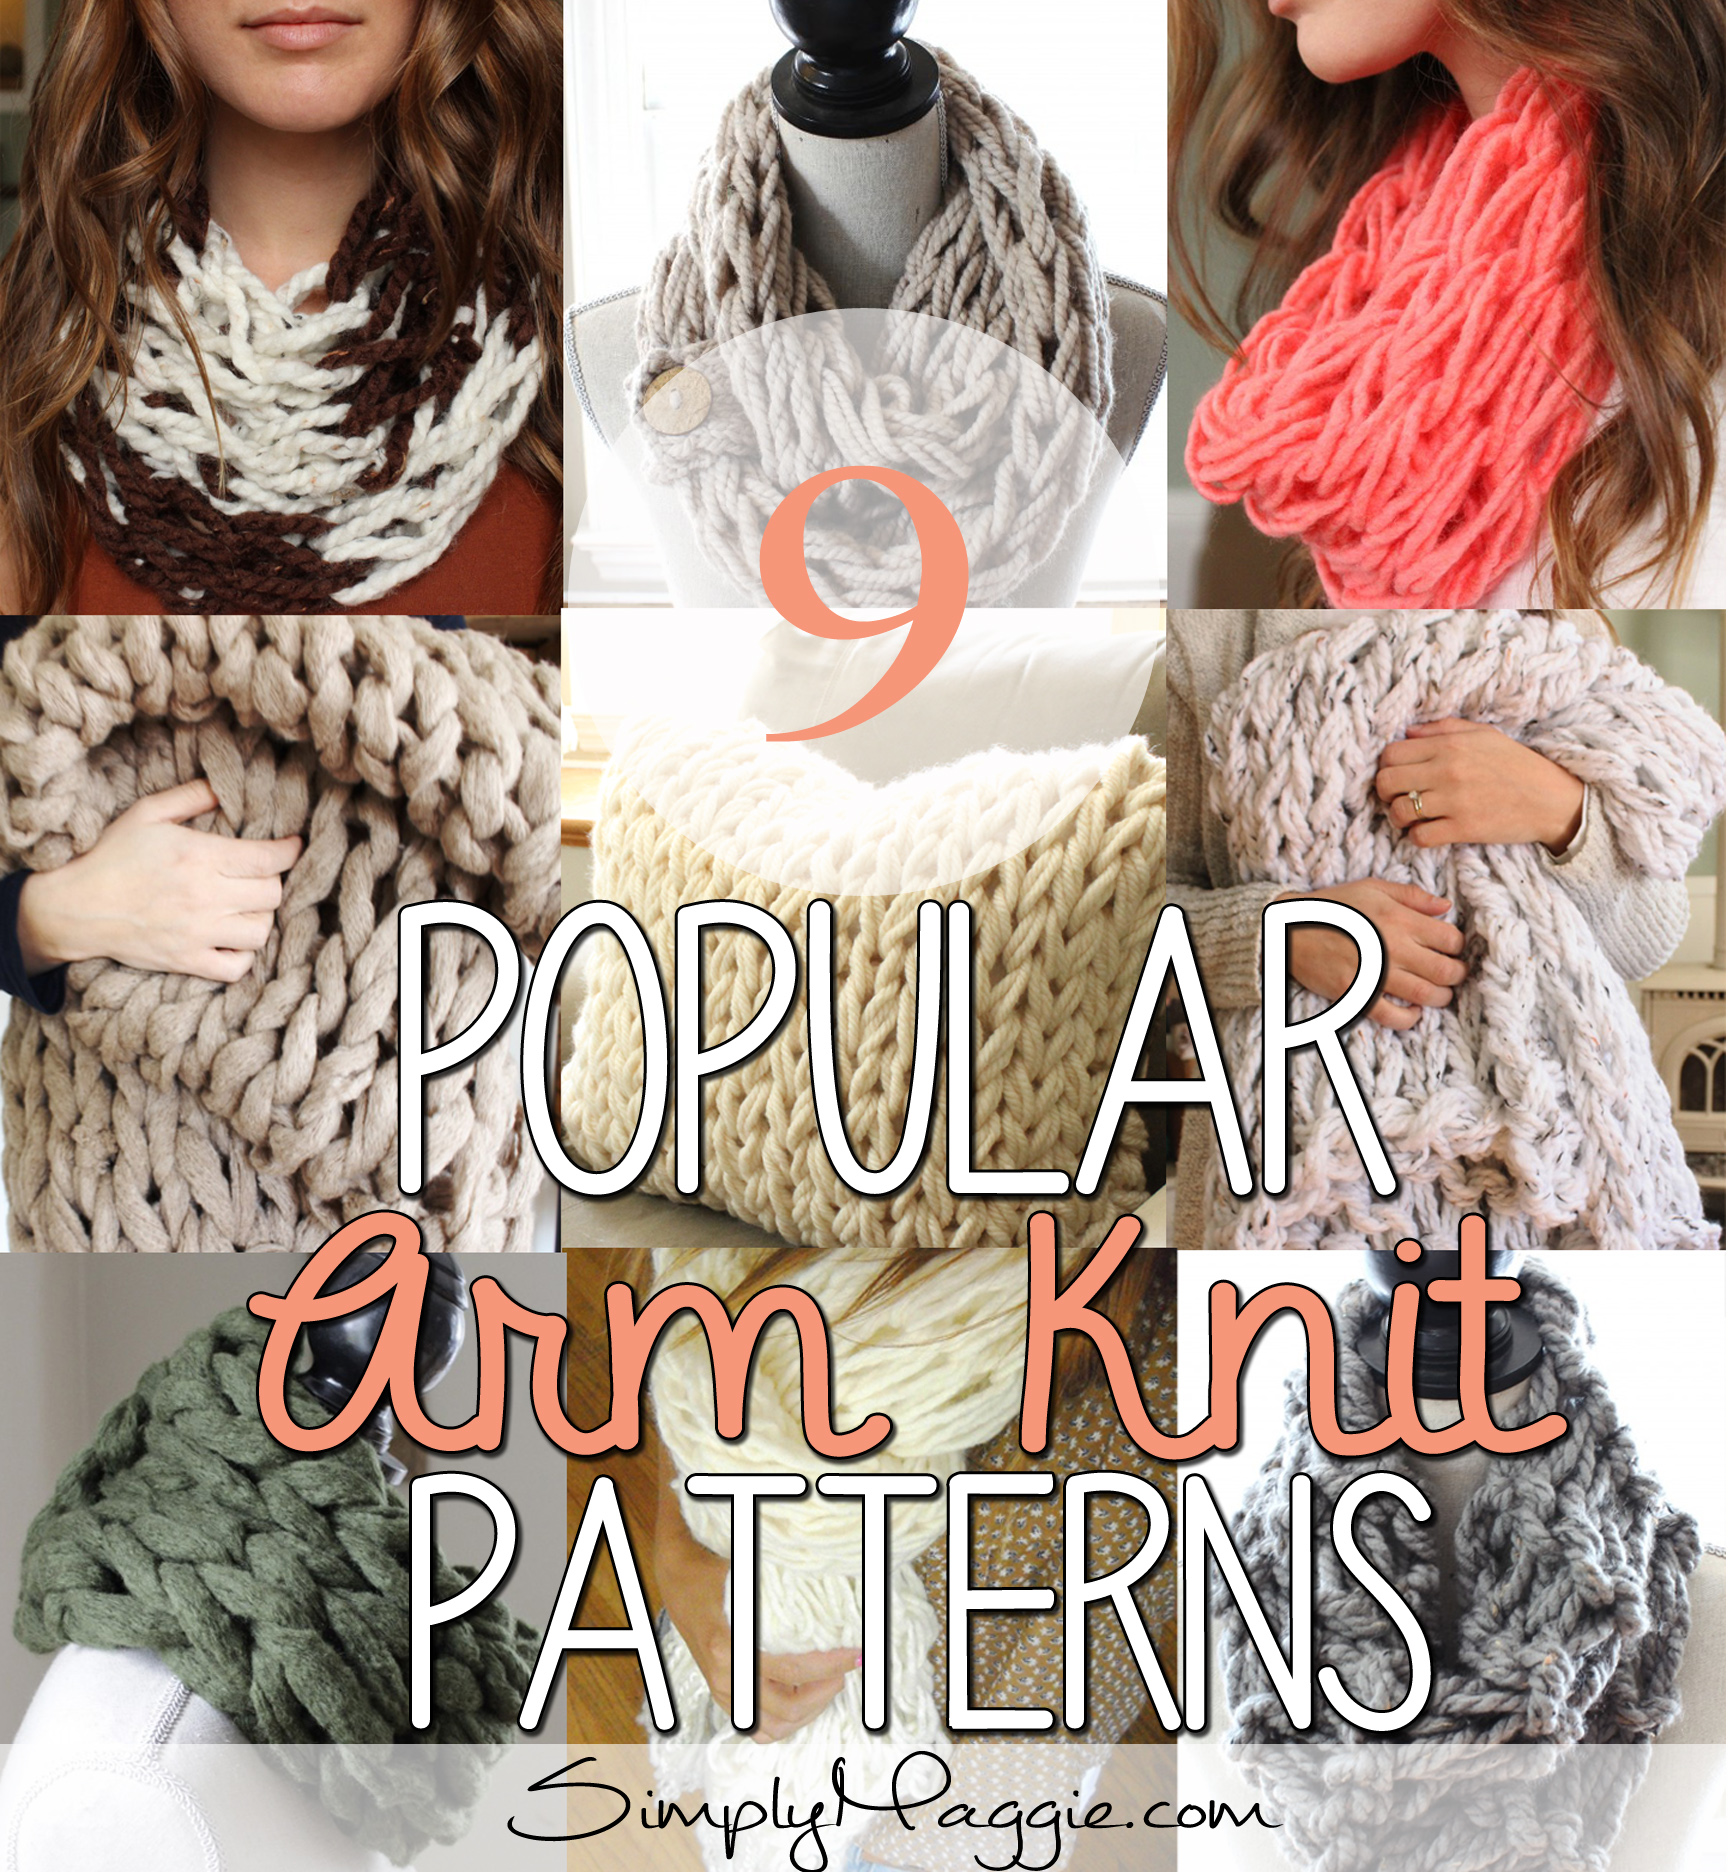 9 Popular Arm Knit Patterns